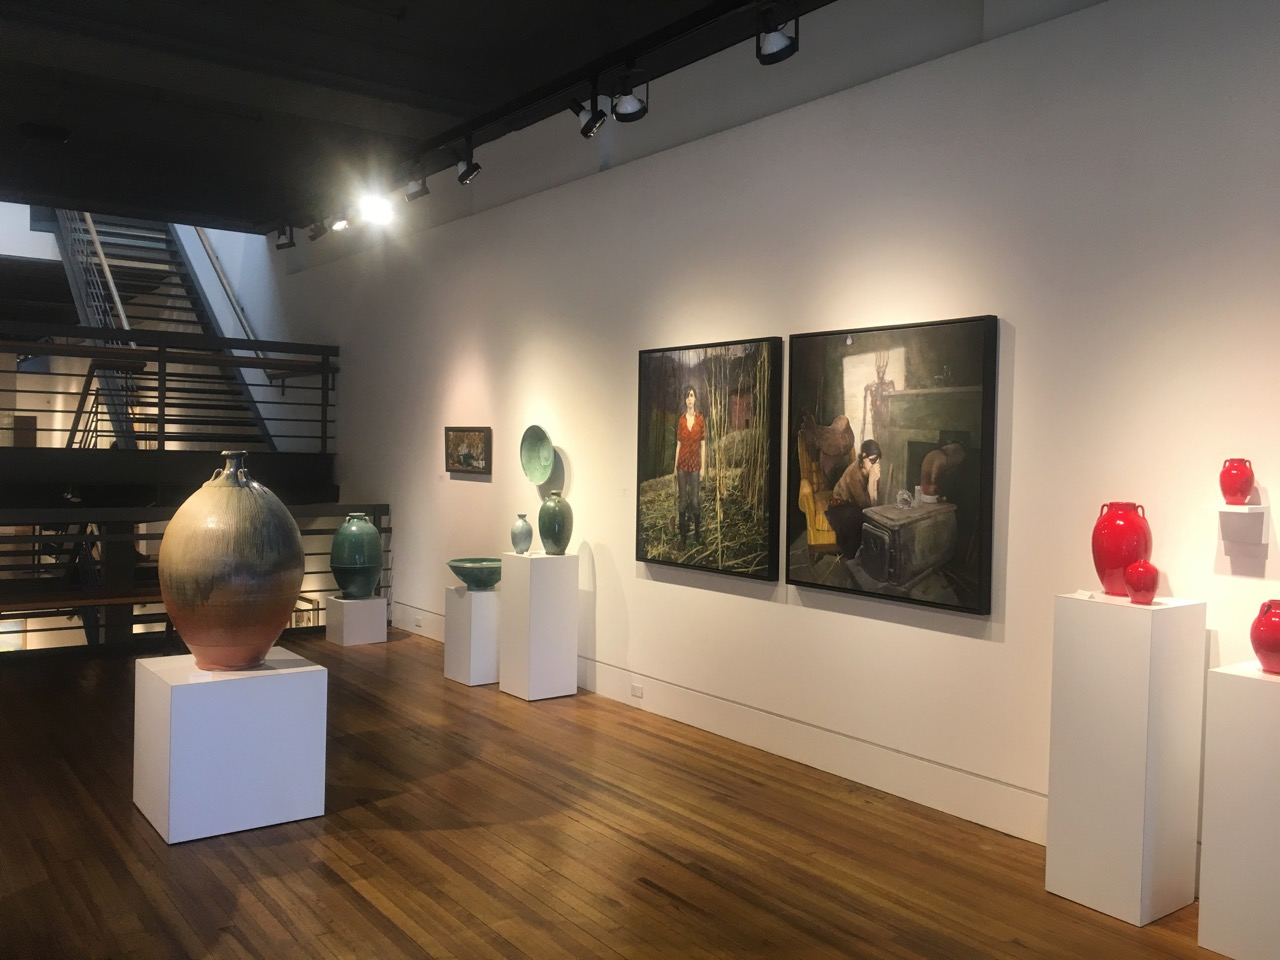 Exhibition at Blue Spiral 1 Gallery Summer 2018 in Asheville, NC